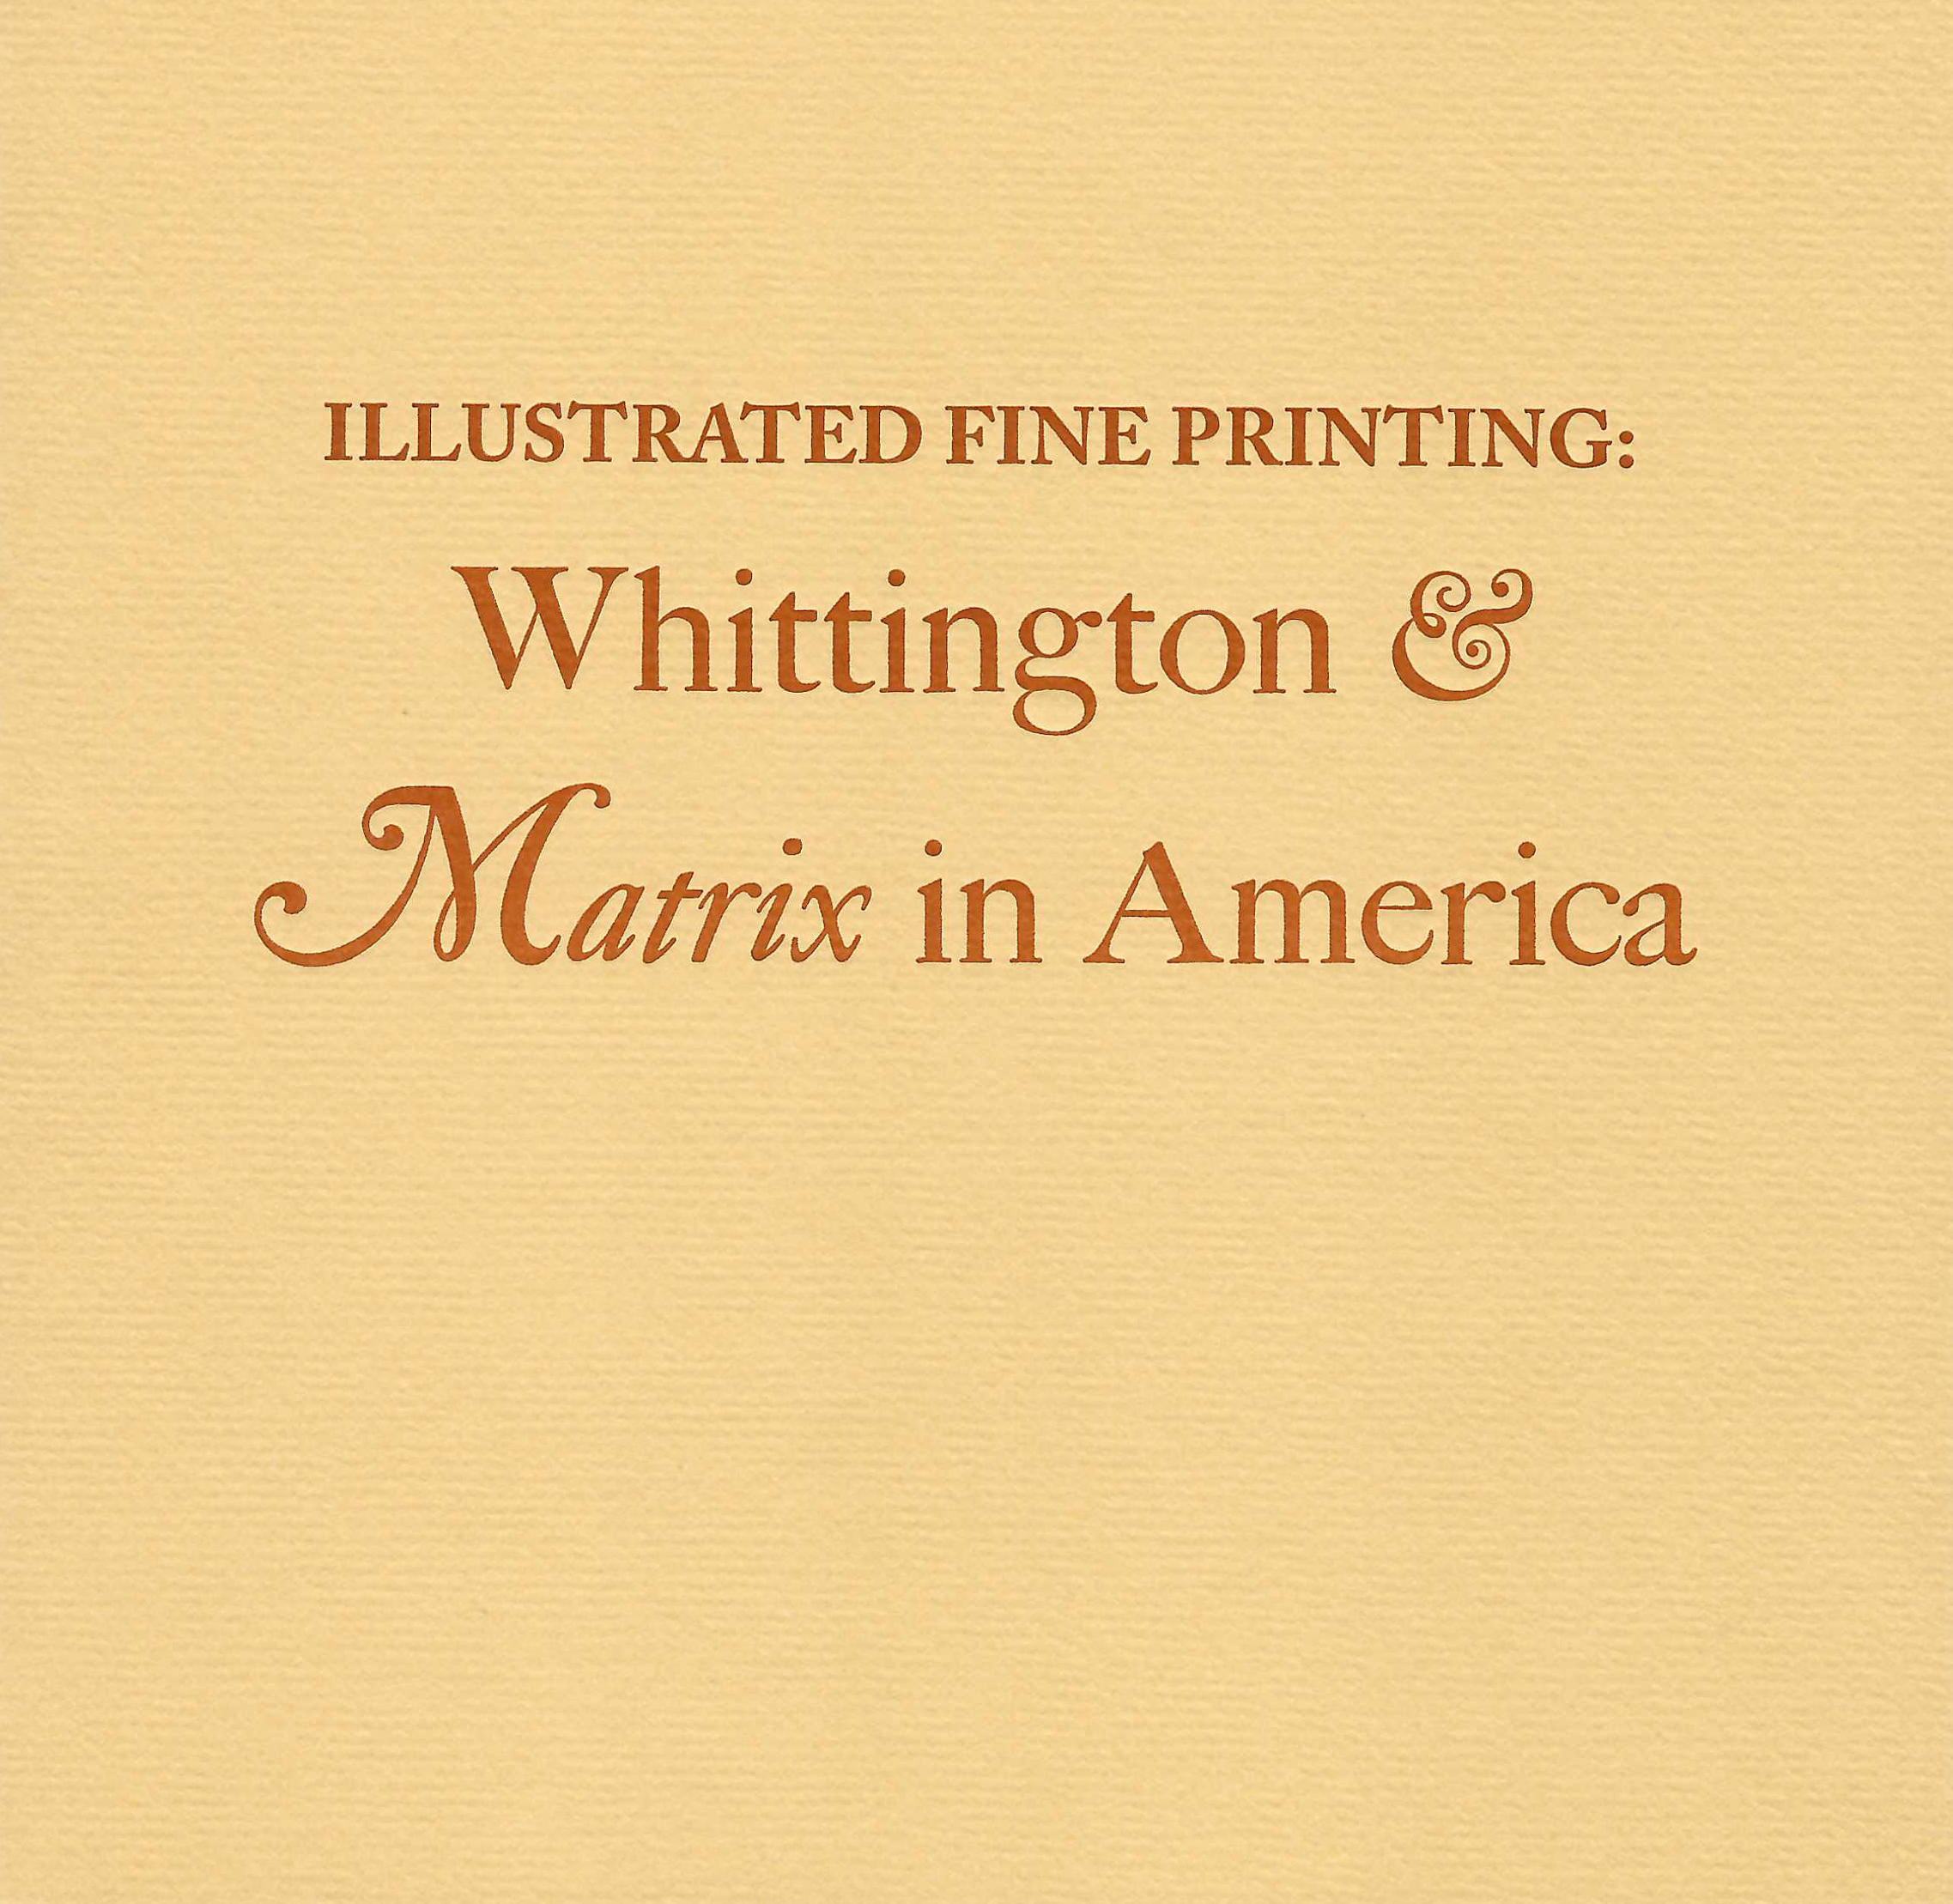 tan book cover with letterpress printed title in center